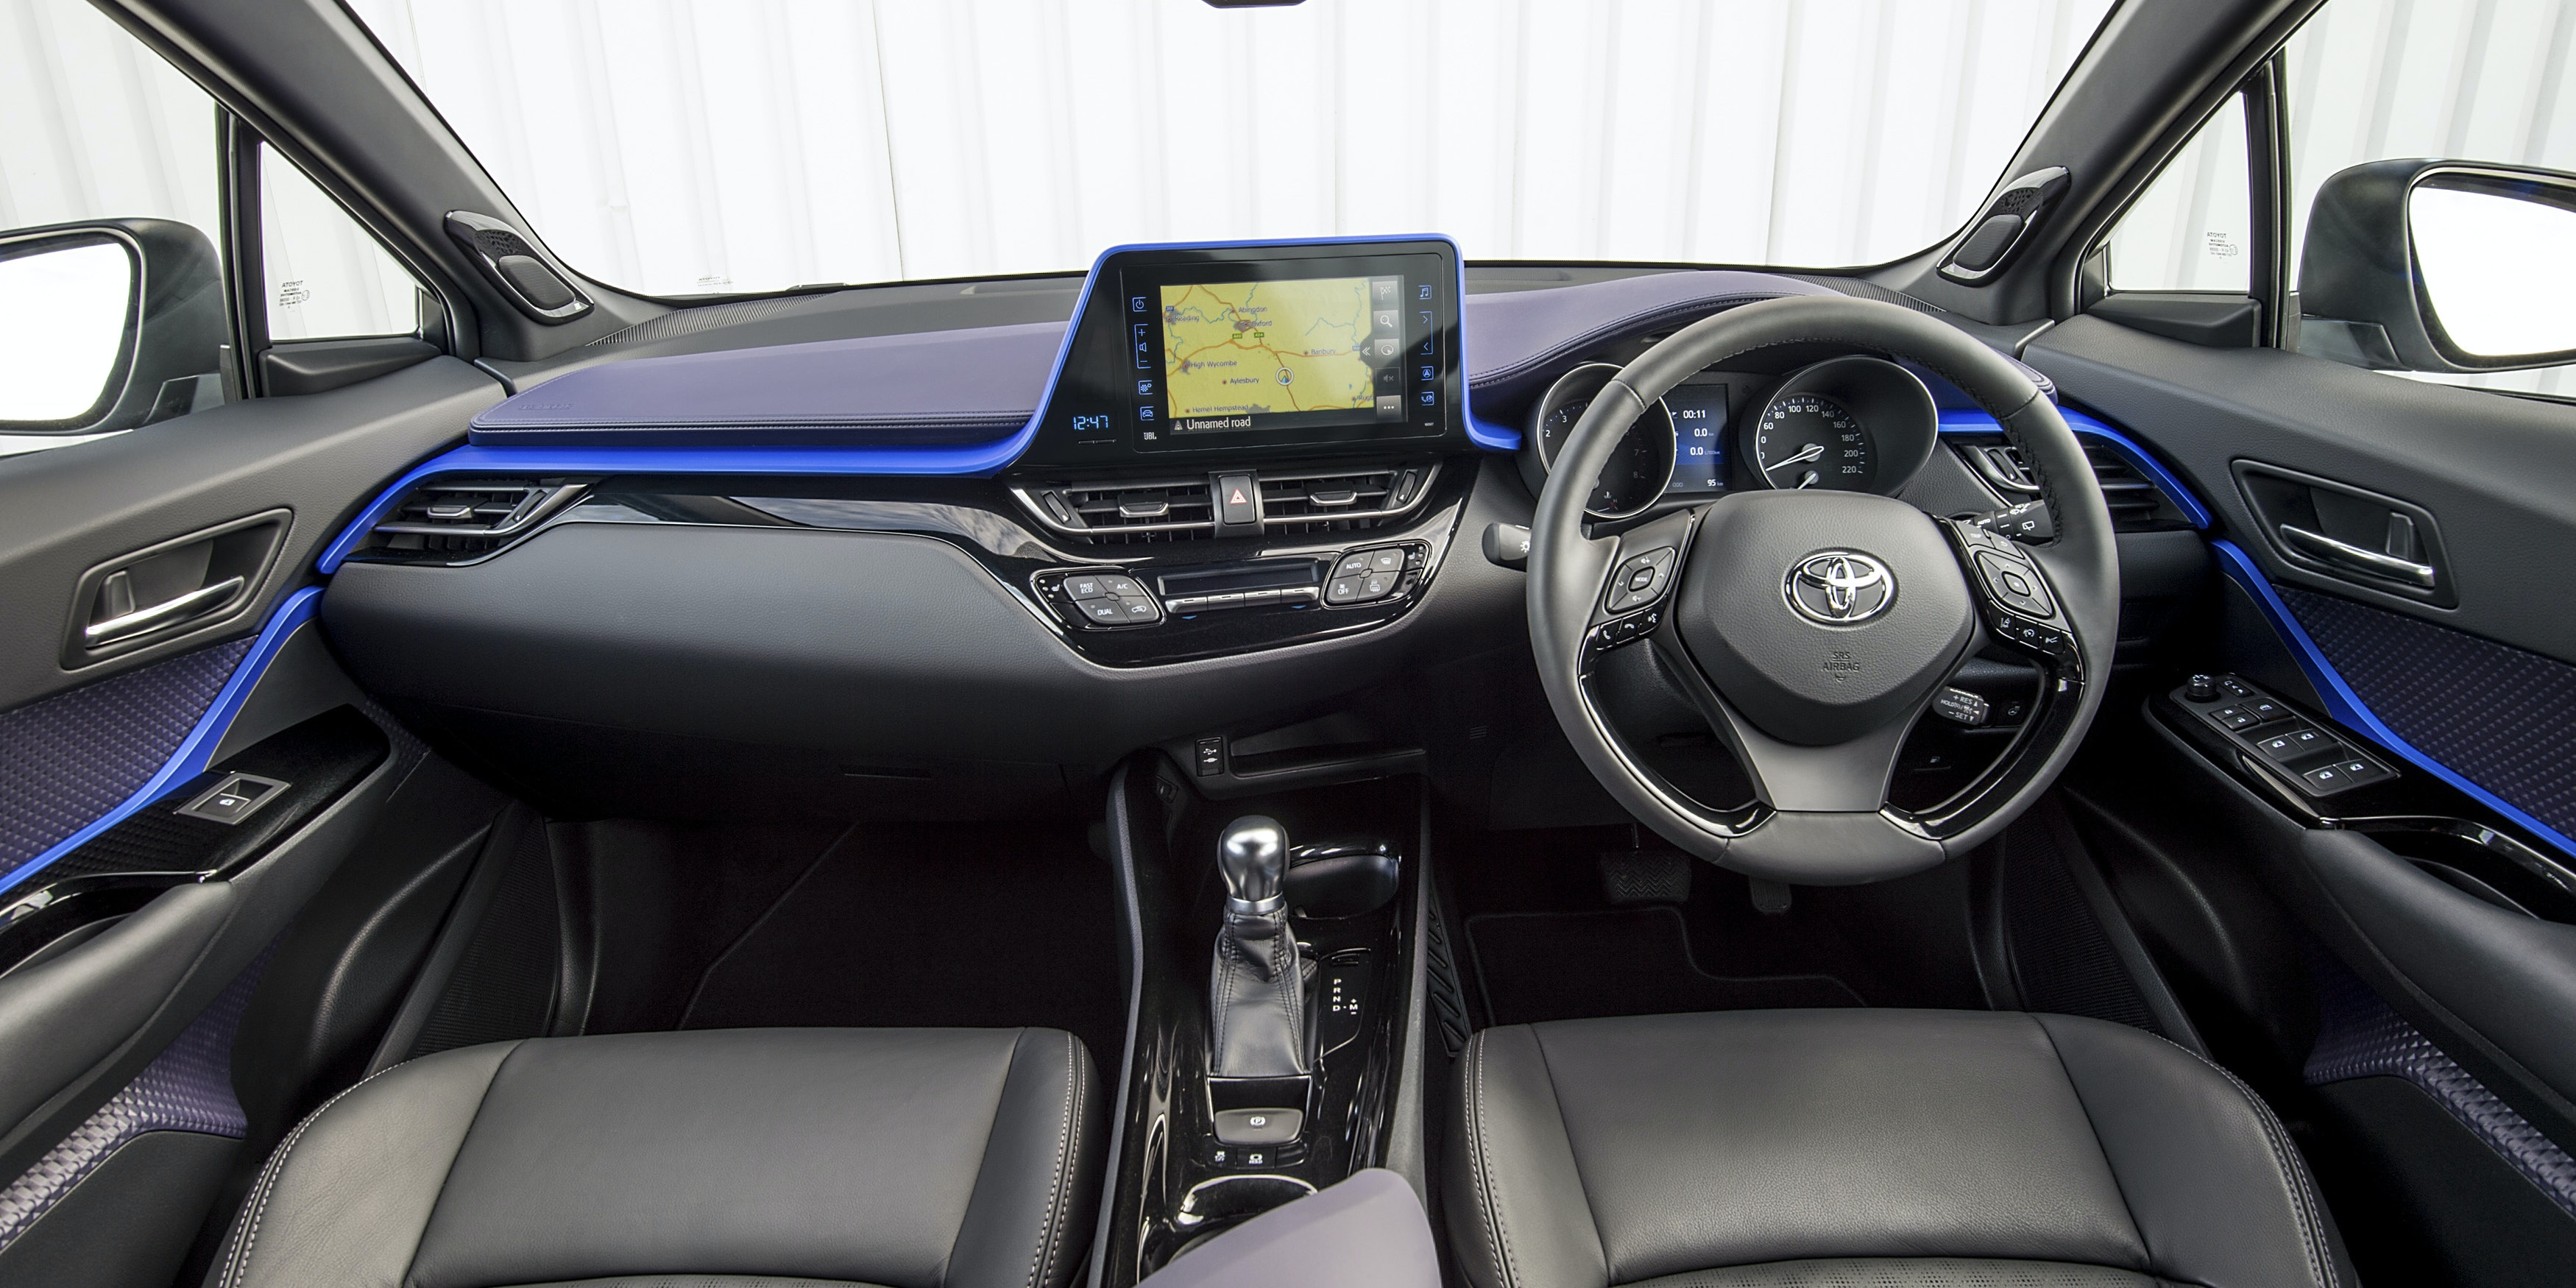 Why You Should Skip The Toyota Prius For The Prius Prime